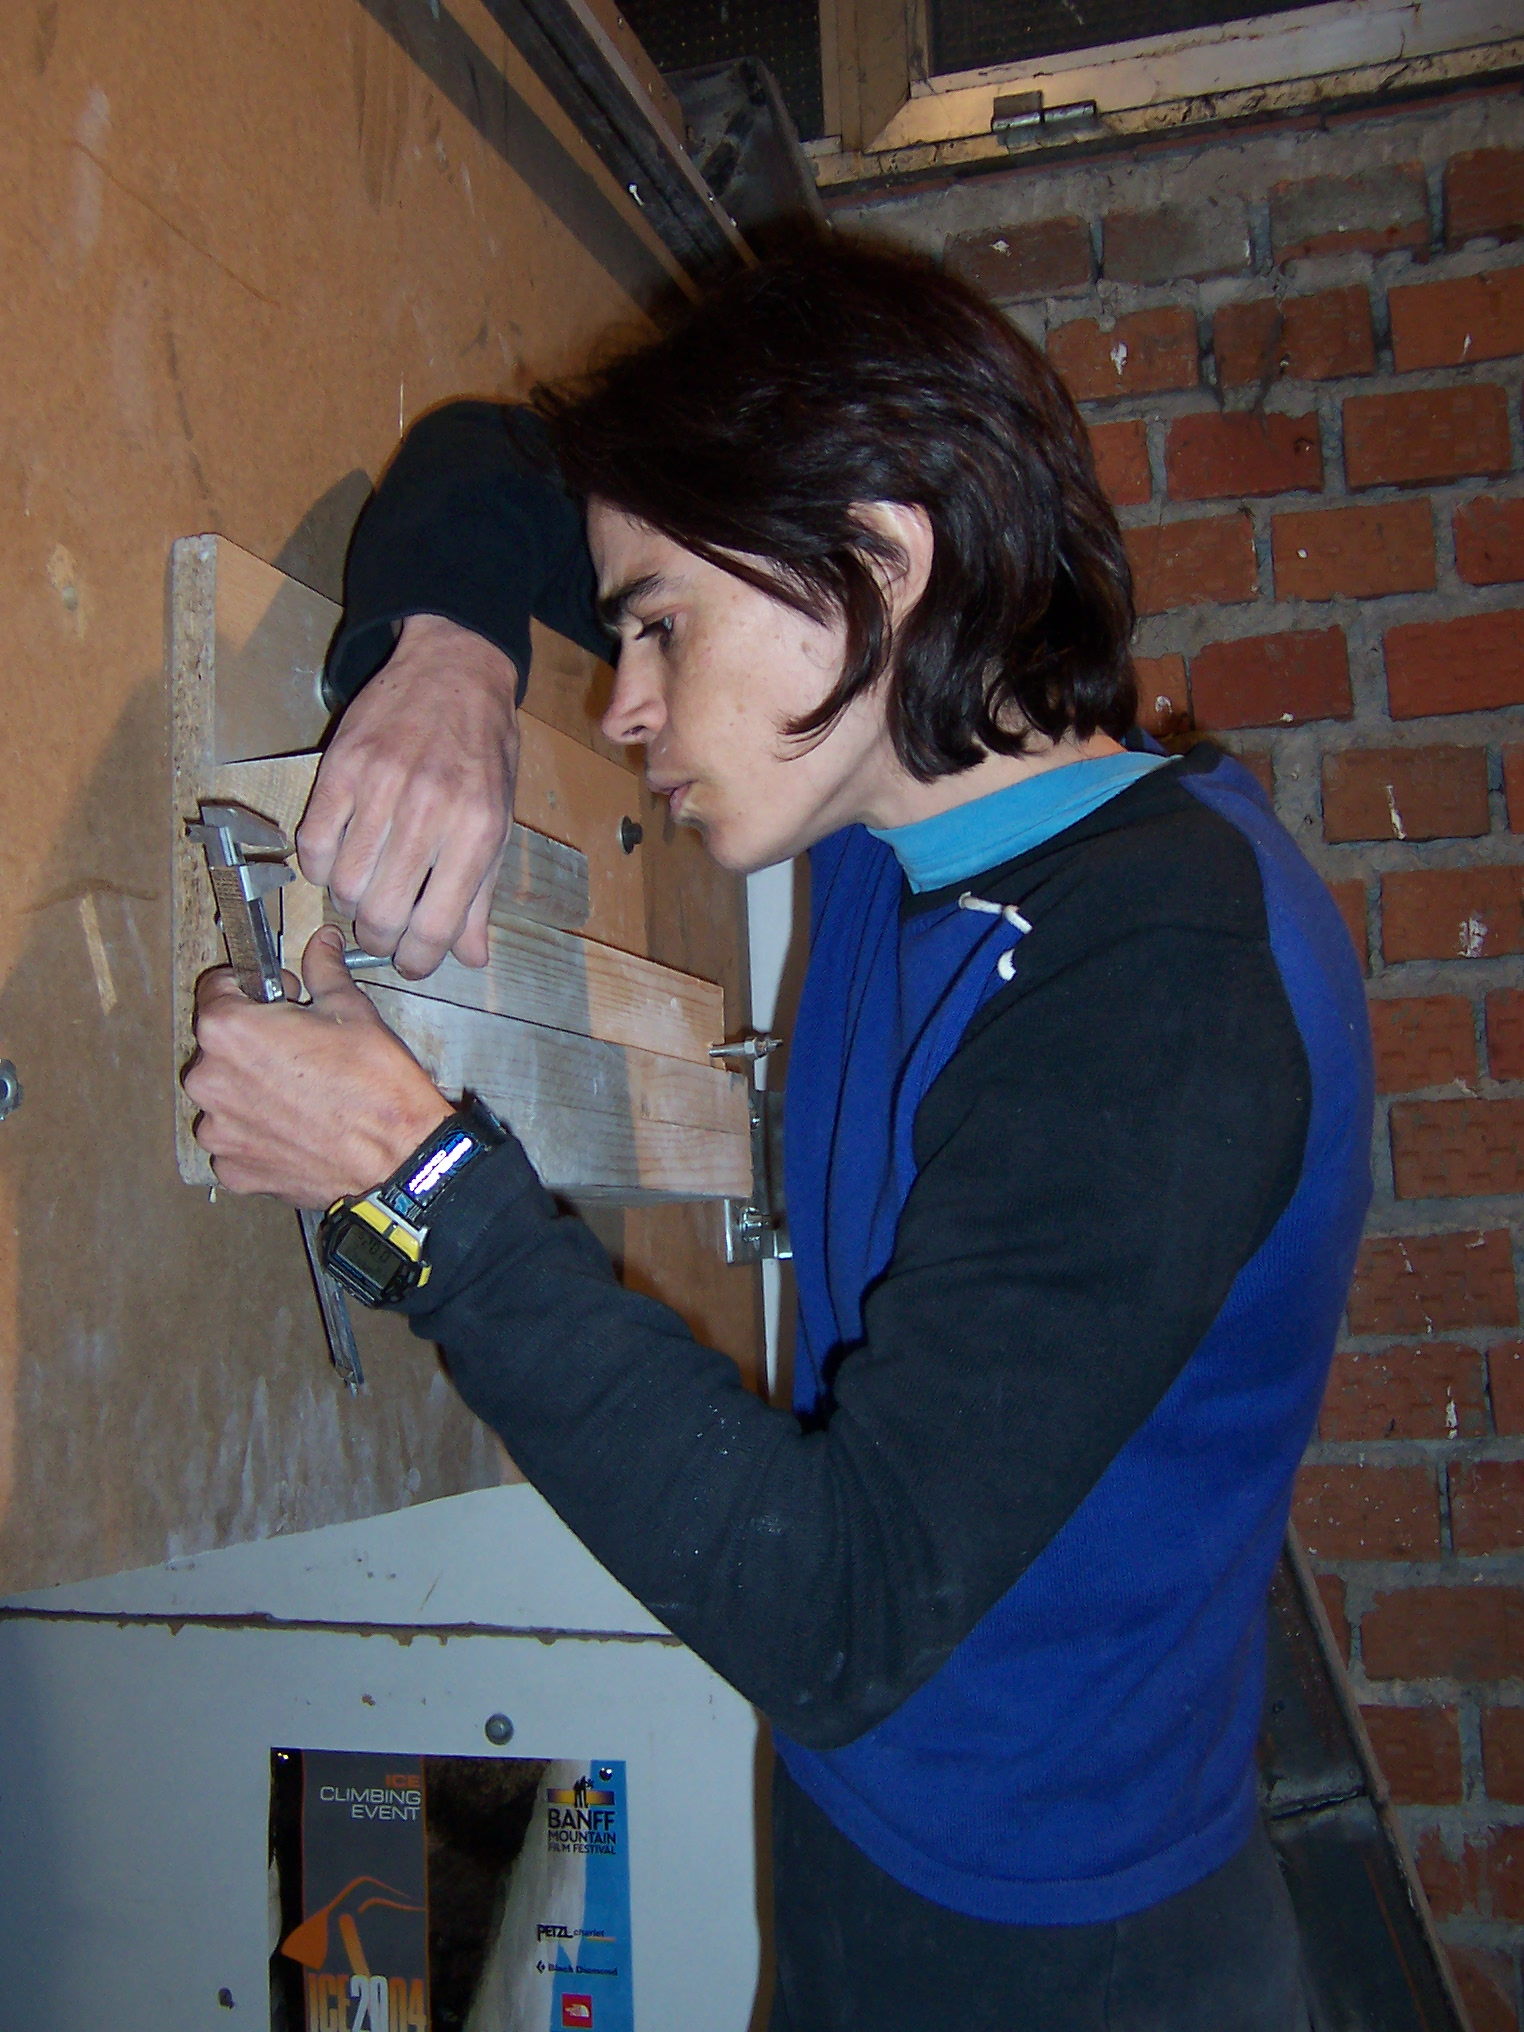 Eva building her first prototype for research purposes, circa 2004.